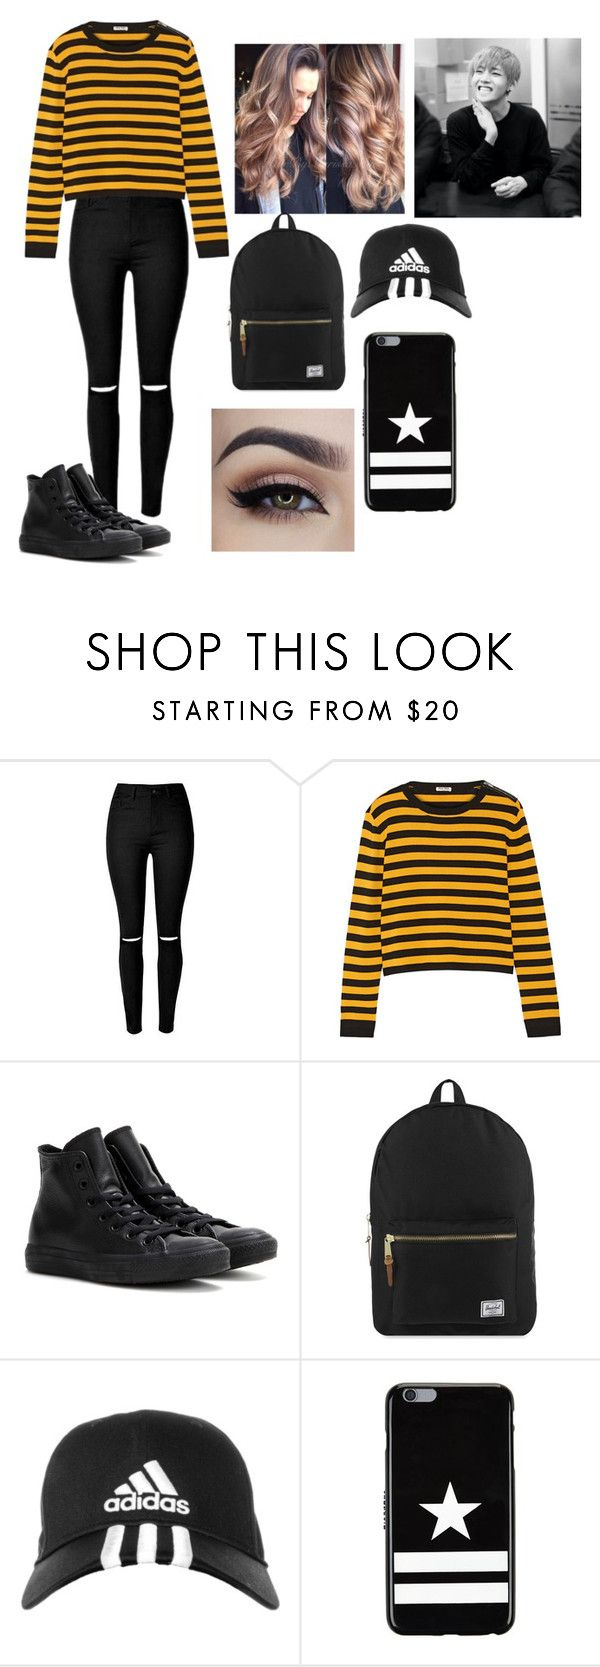 """""""Taehyung girl version"""" by bts-trash ❤ liked on Polyvore featuring Miu Miu, Converse, Herschel Supply Co., adidas and Givenchy"""